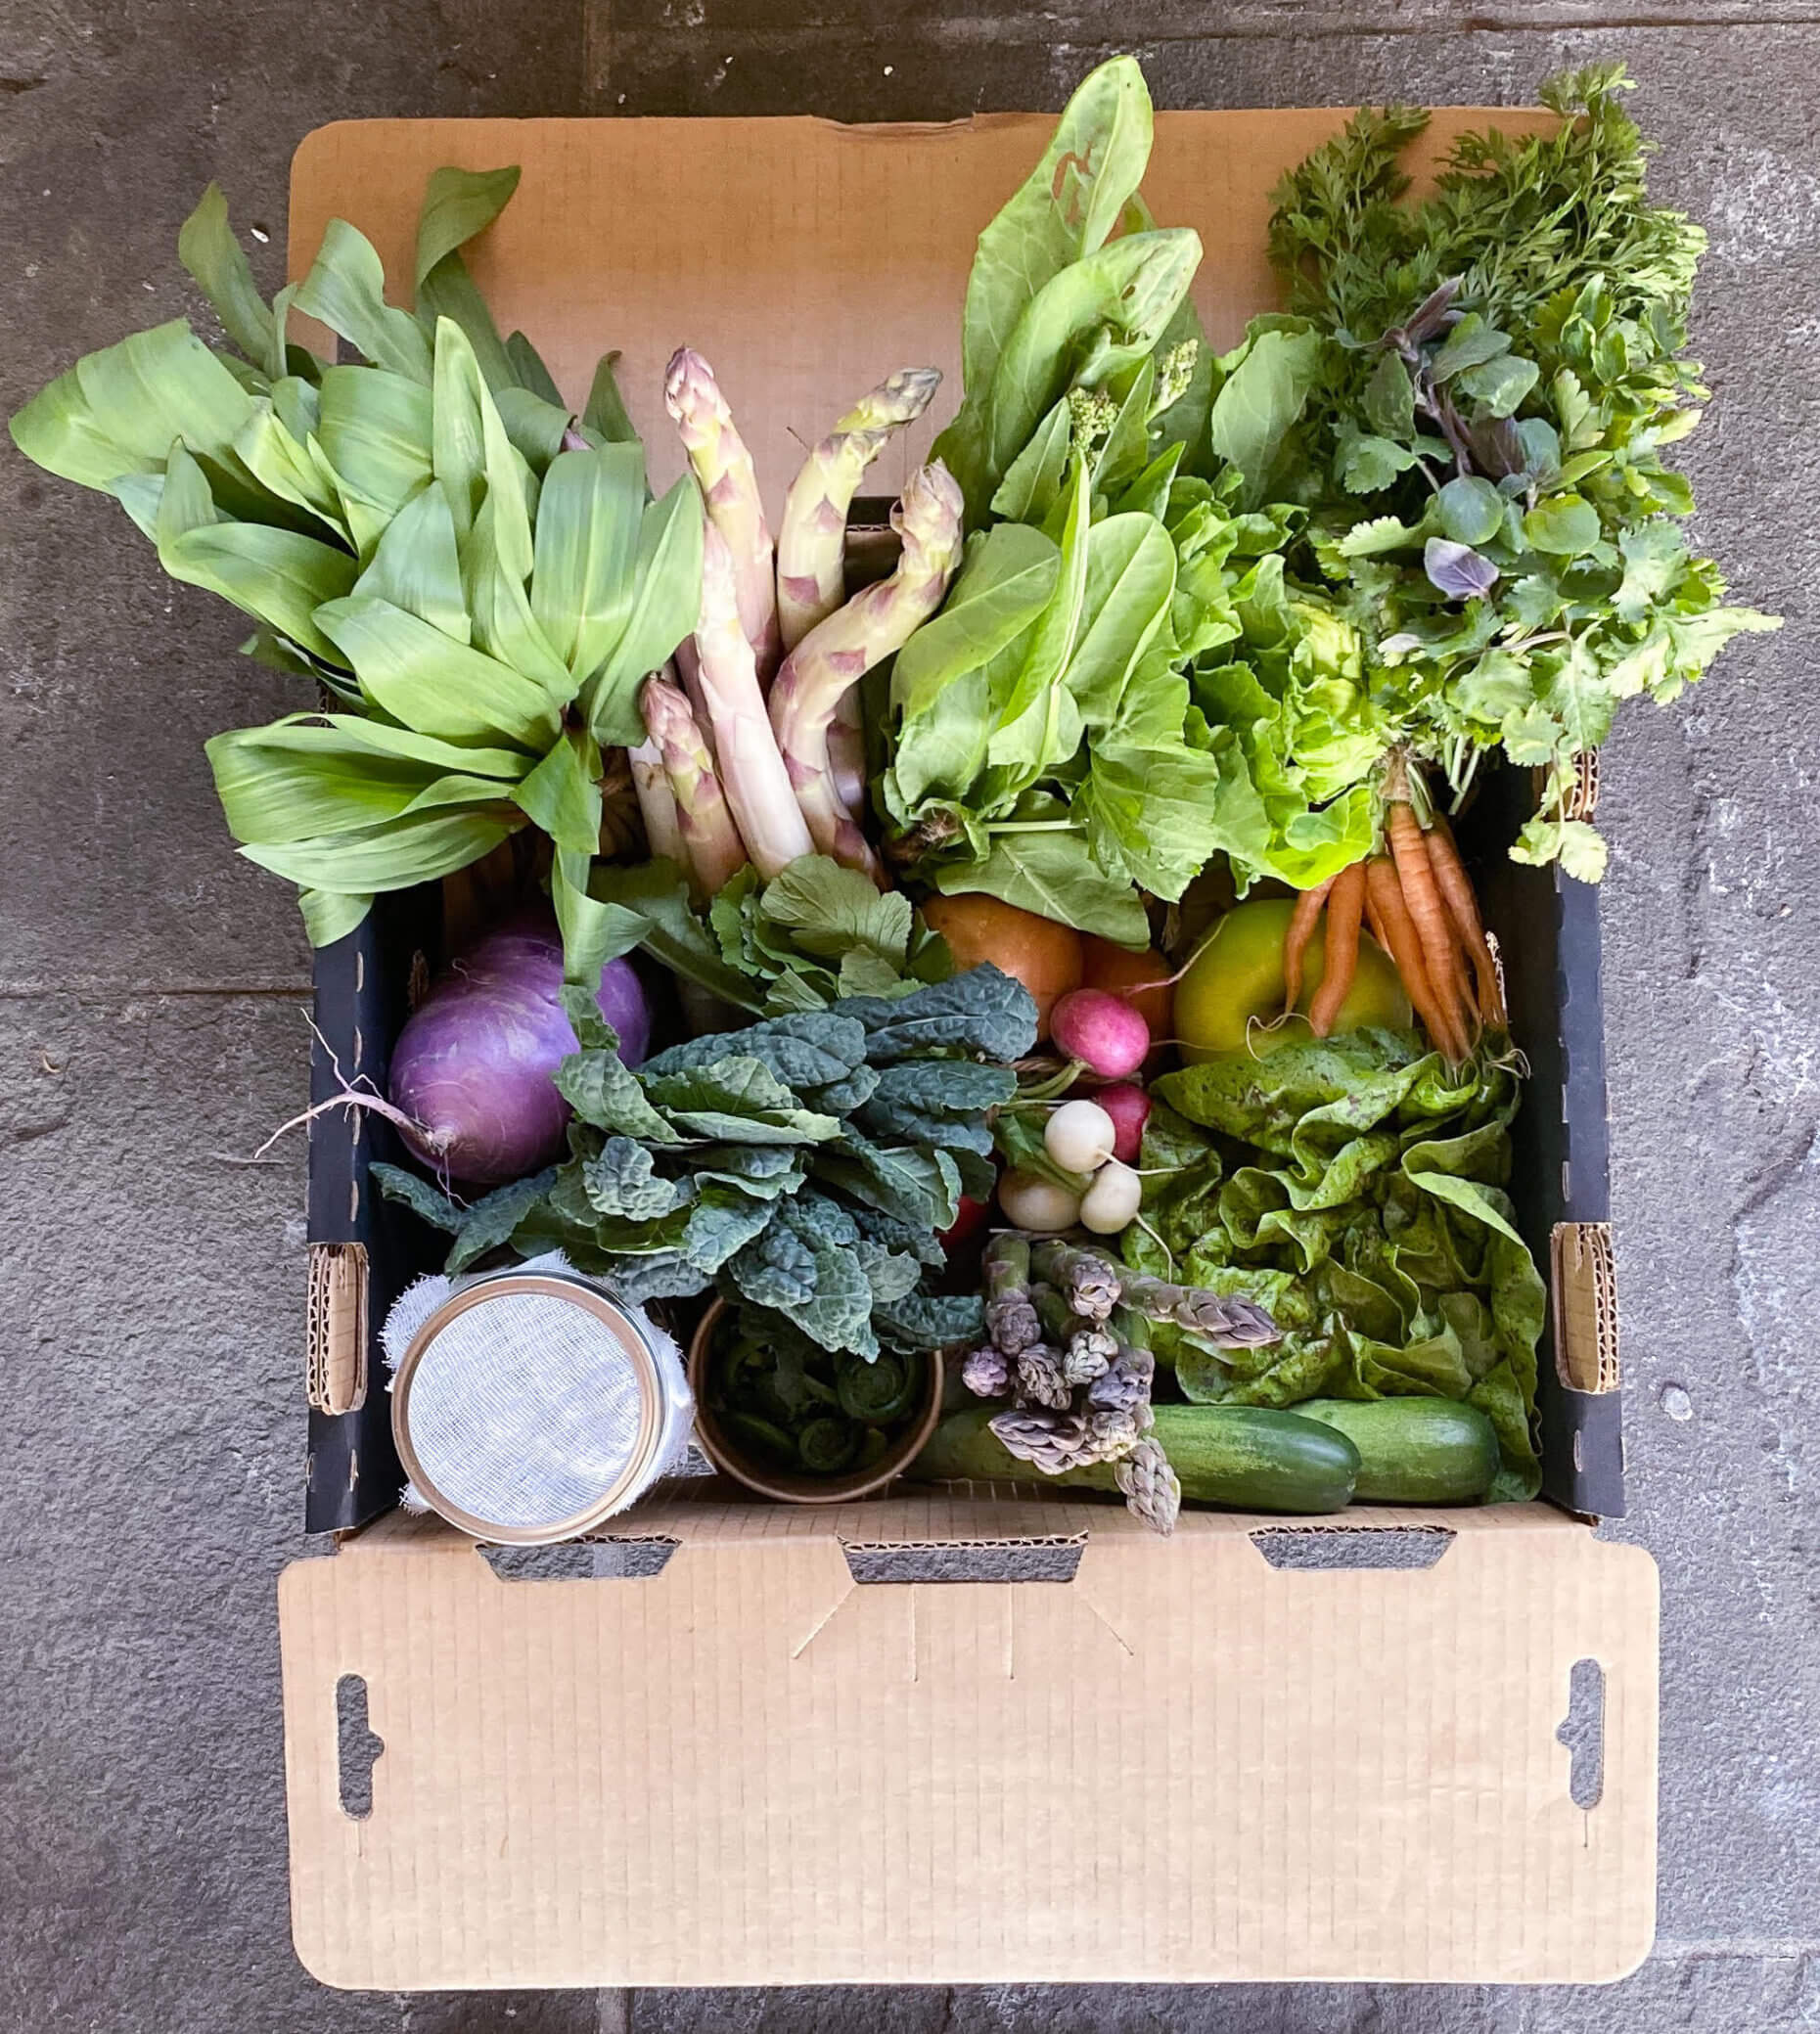 ResourcED, a project Dan Barber and his colleagues created, have sold market boxes that include produce, as well as a grass-fed beef, fisheries, pastry, and bread box, at both of his restaurants. But their future trajectory could soon change.